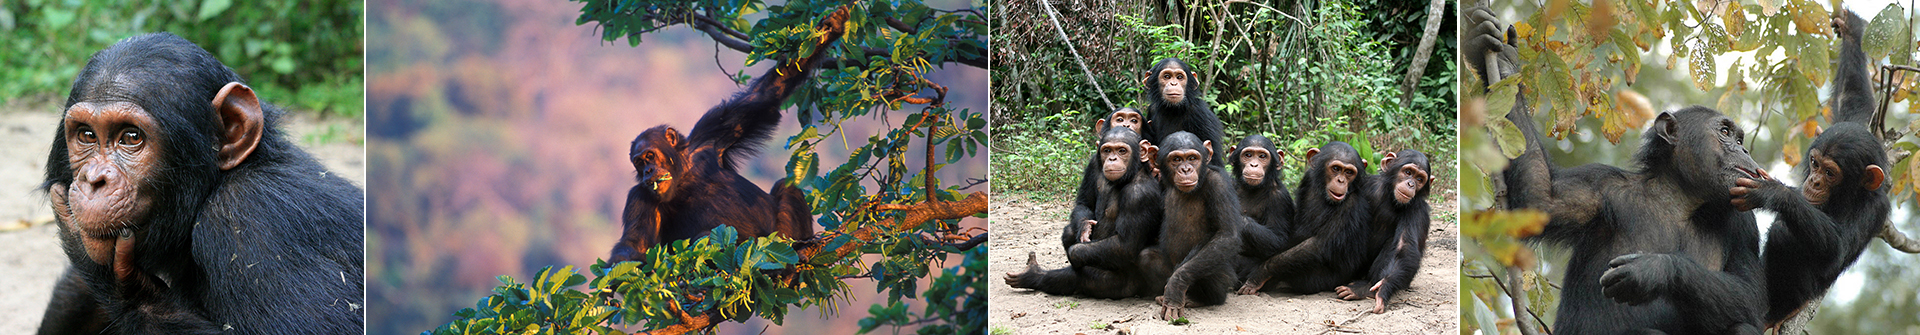 chimp collage 2